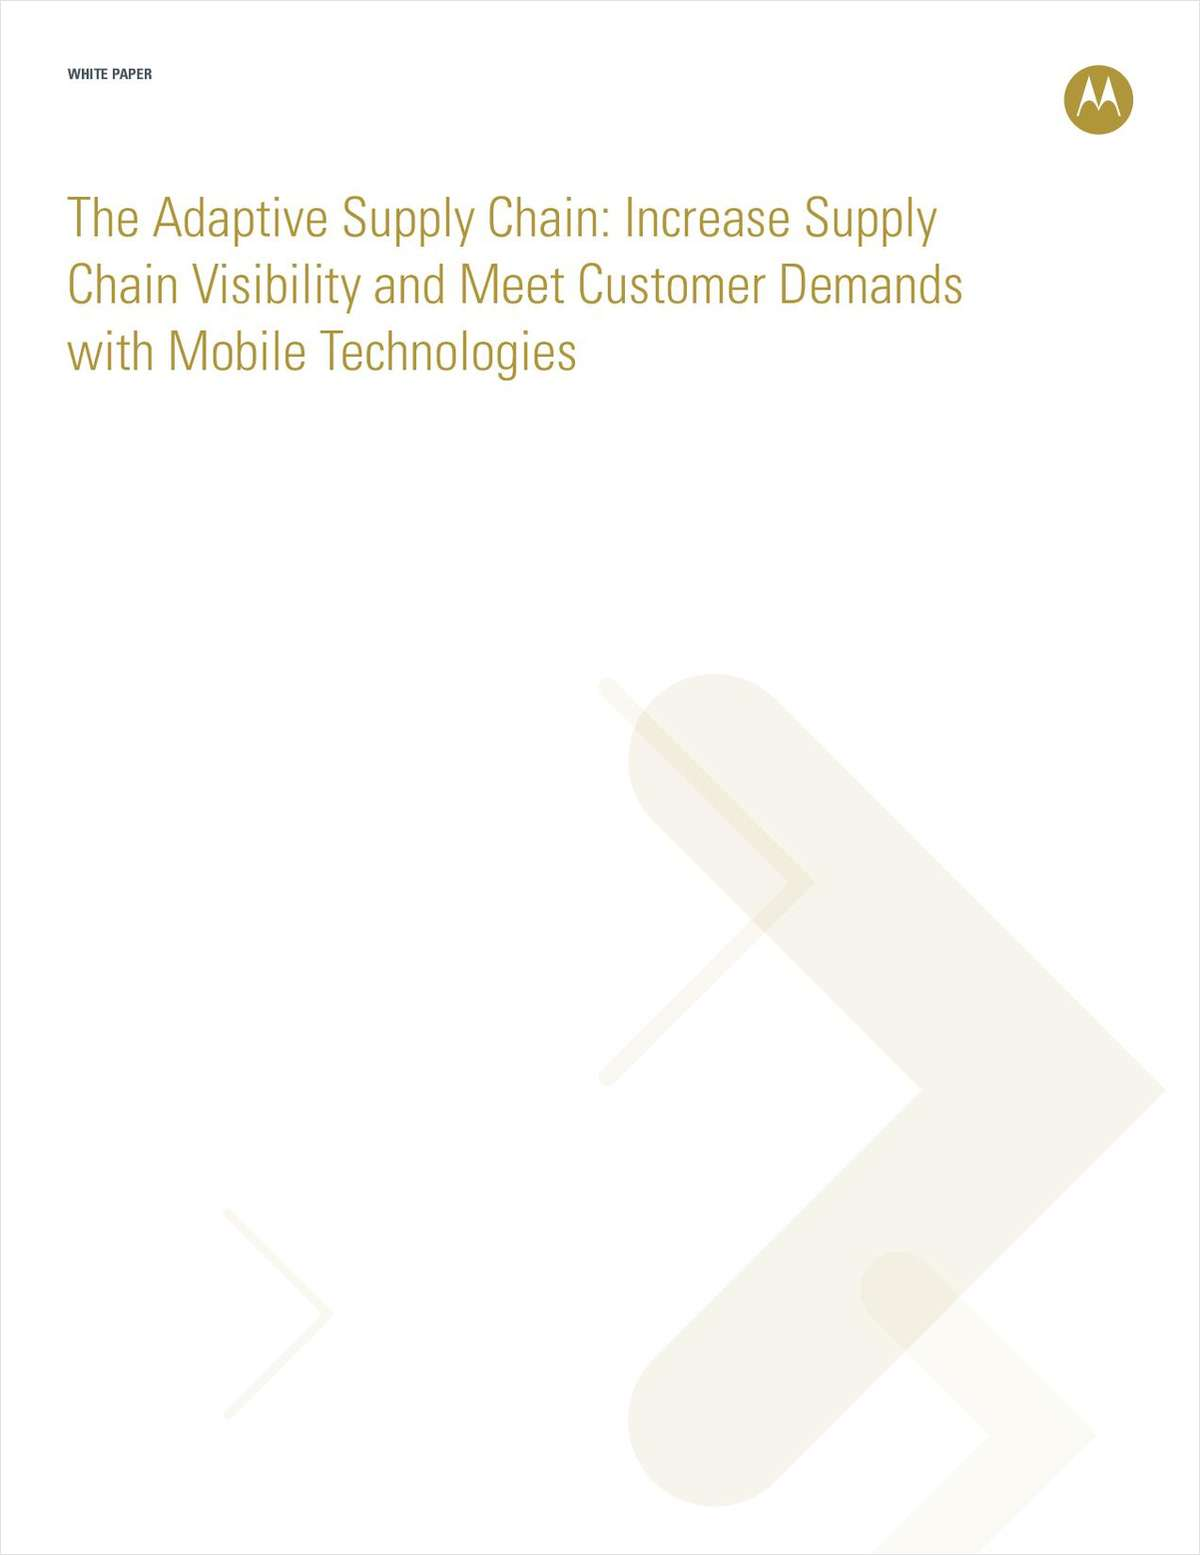 The Adaptive Supply Chain: Increase Supply Chain Visibility and Meet Customer Demands with Mobile Technologies